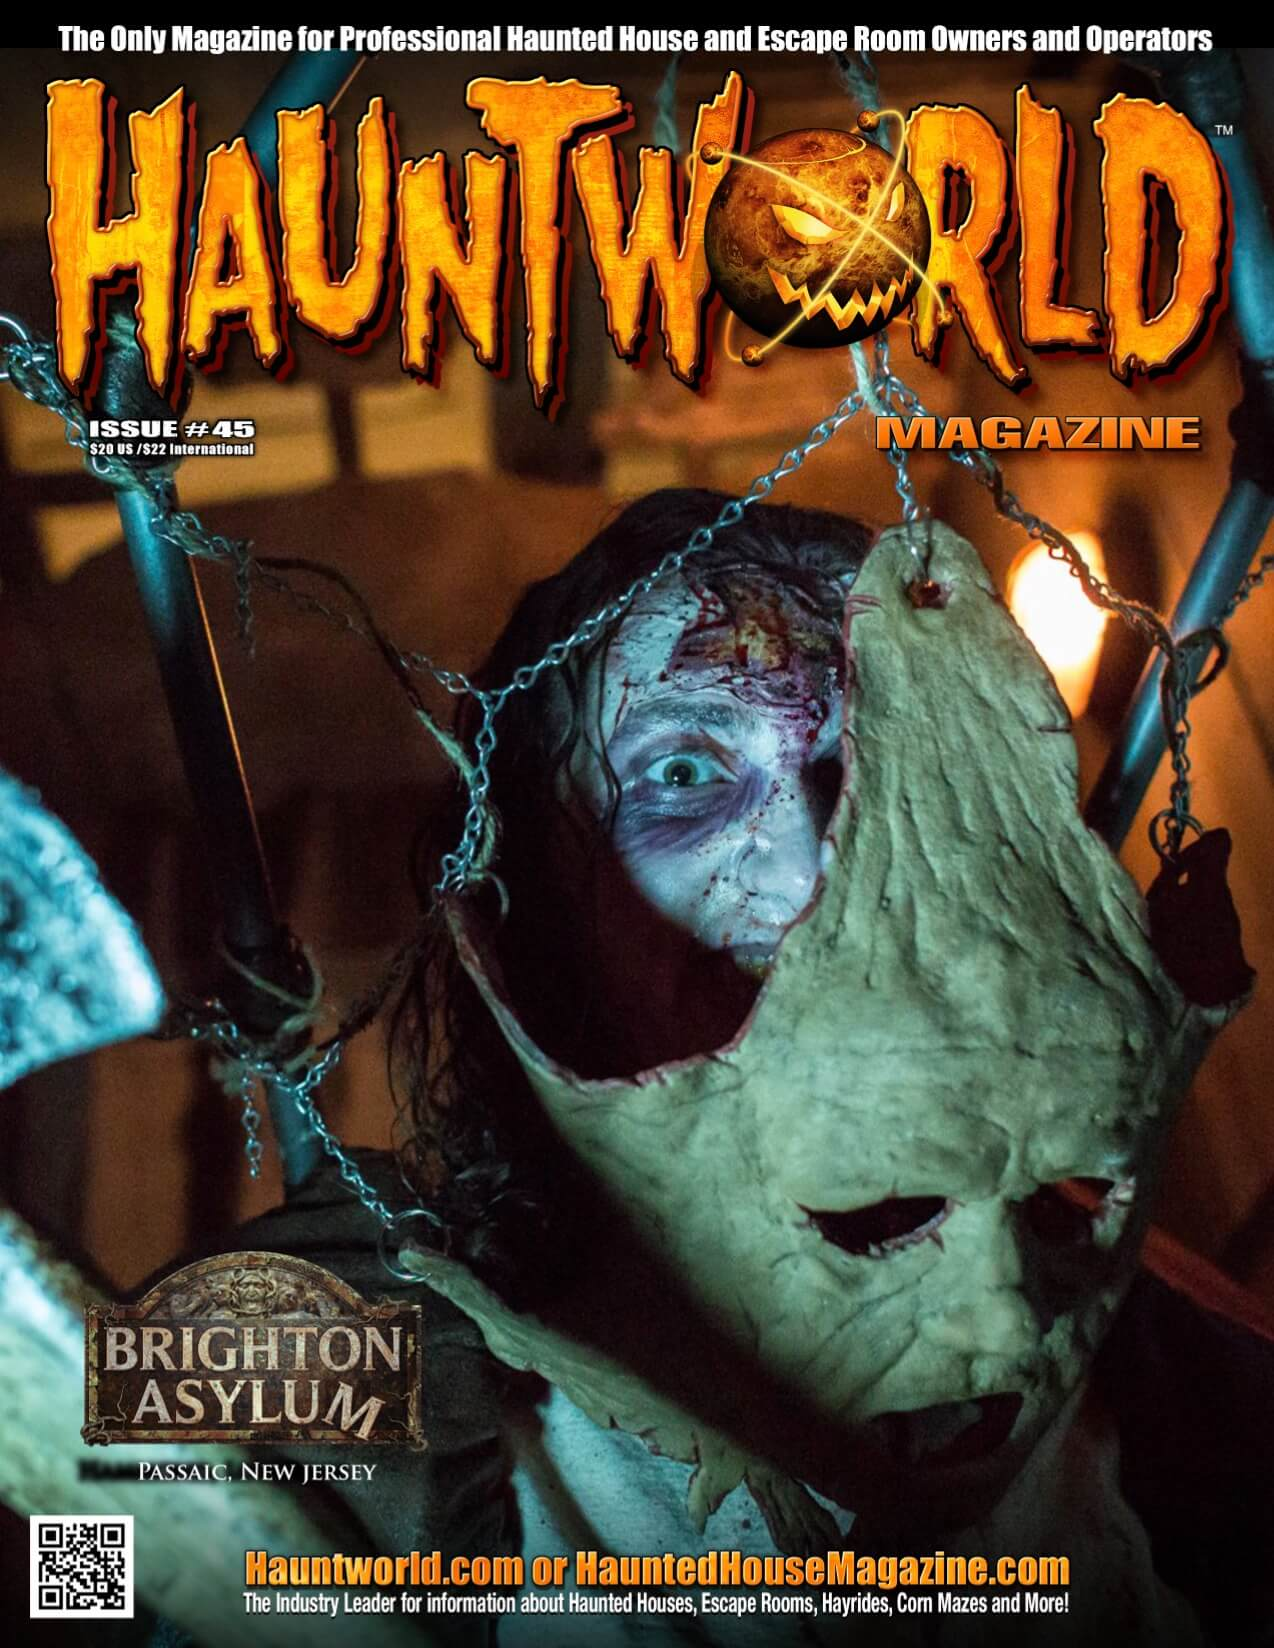 hauntworld magazine the industires leader for information will provide the answers get your subscription now at wwwhauntedhousemagazinecom - Houses Magazine Subscription